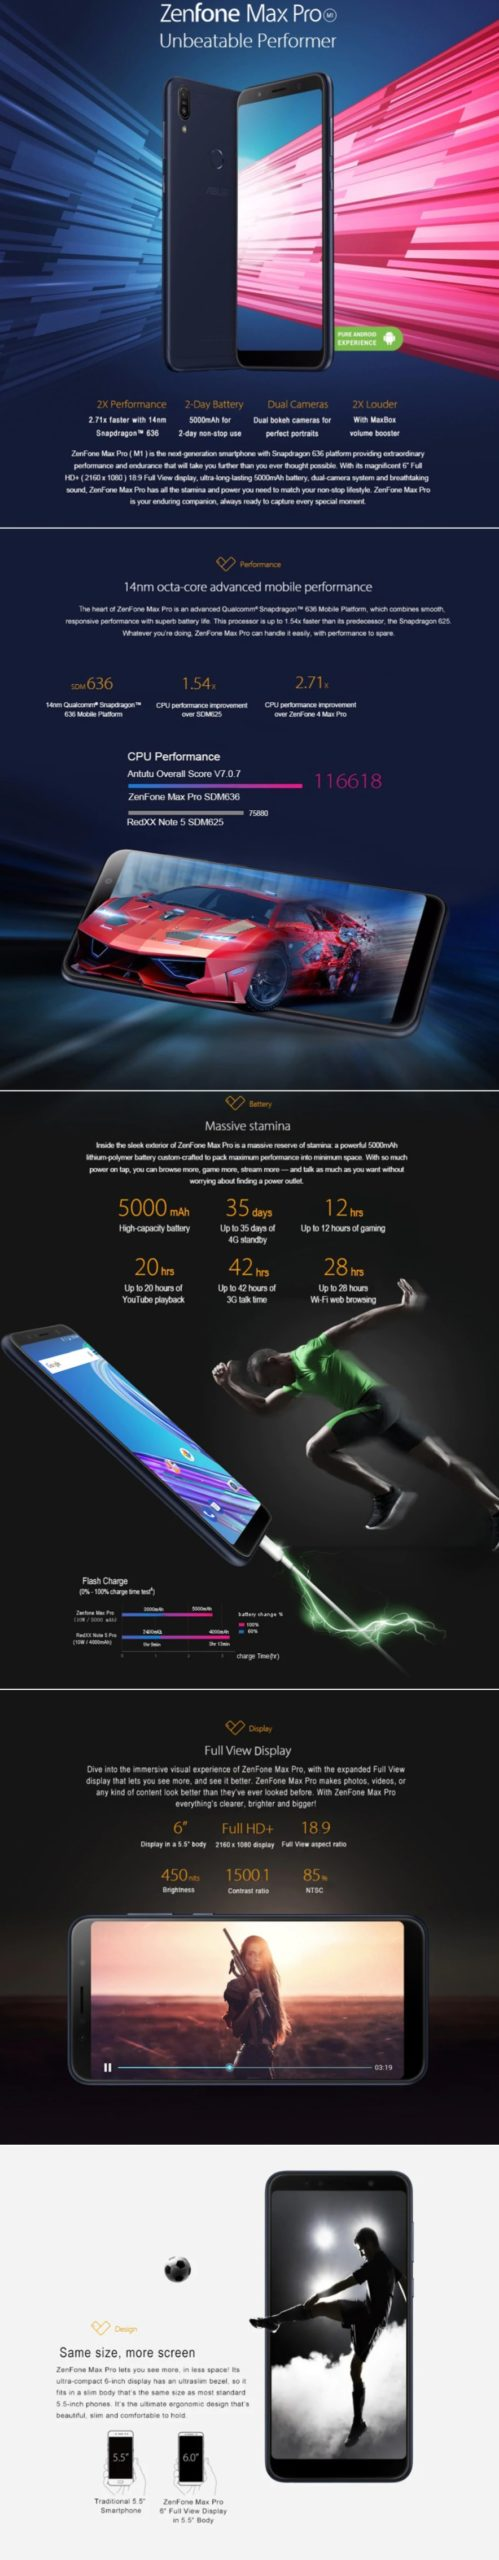 Black Friday Asus Best Deals 2020